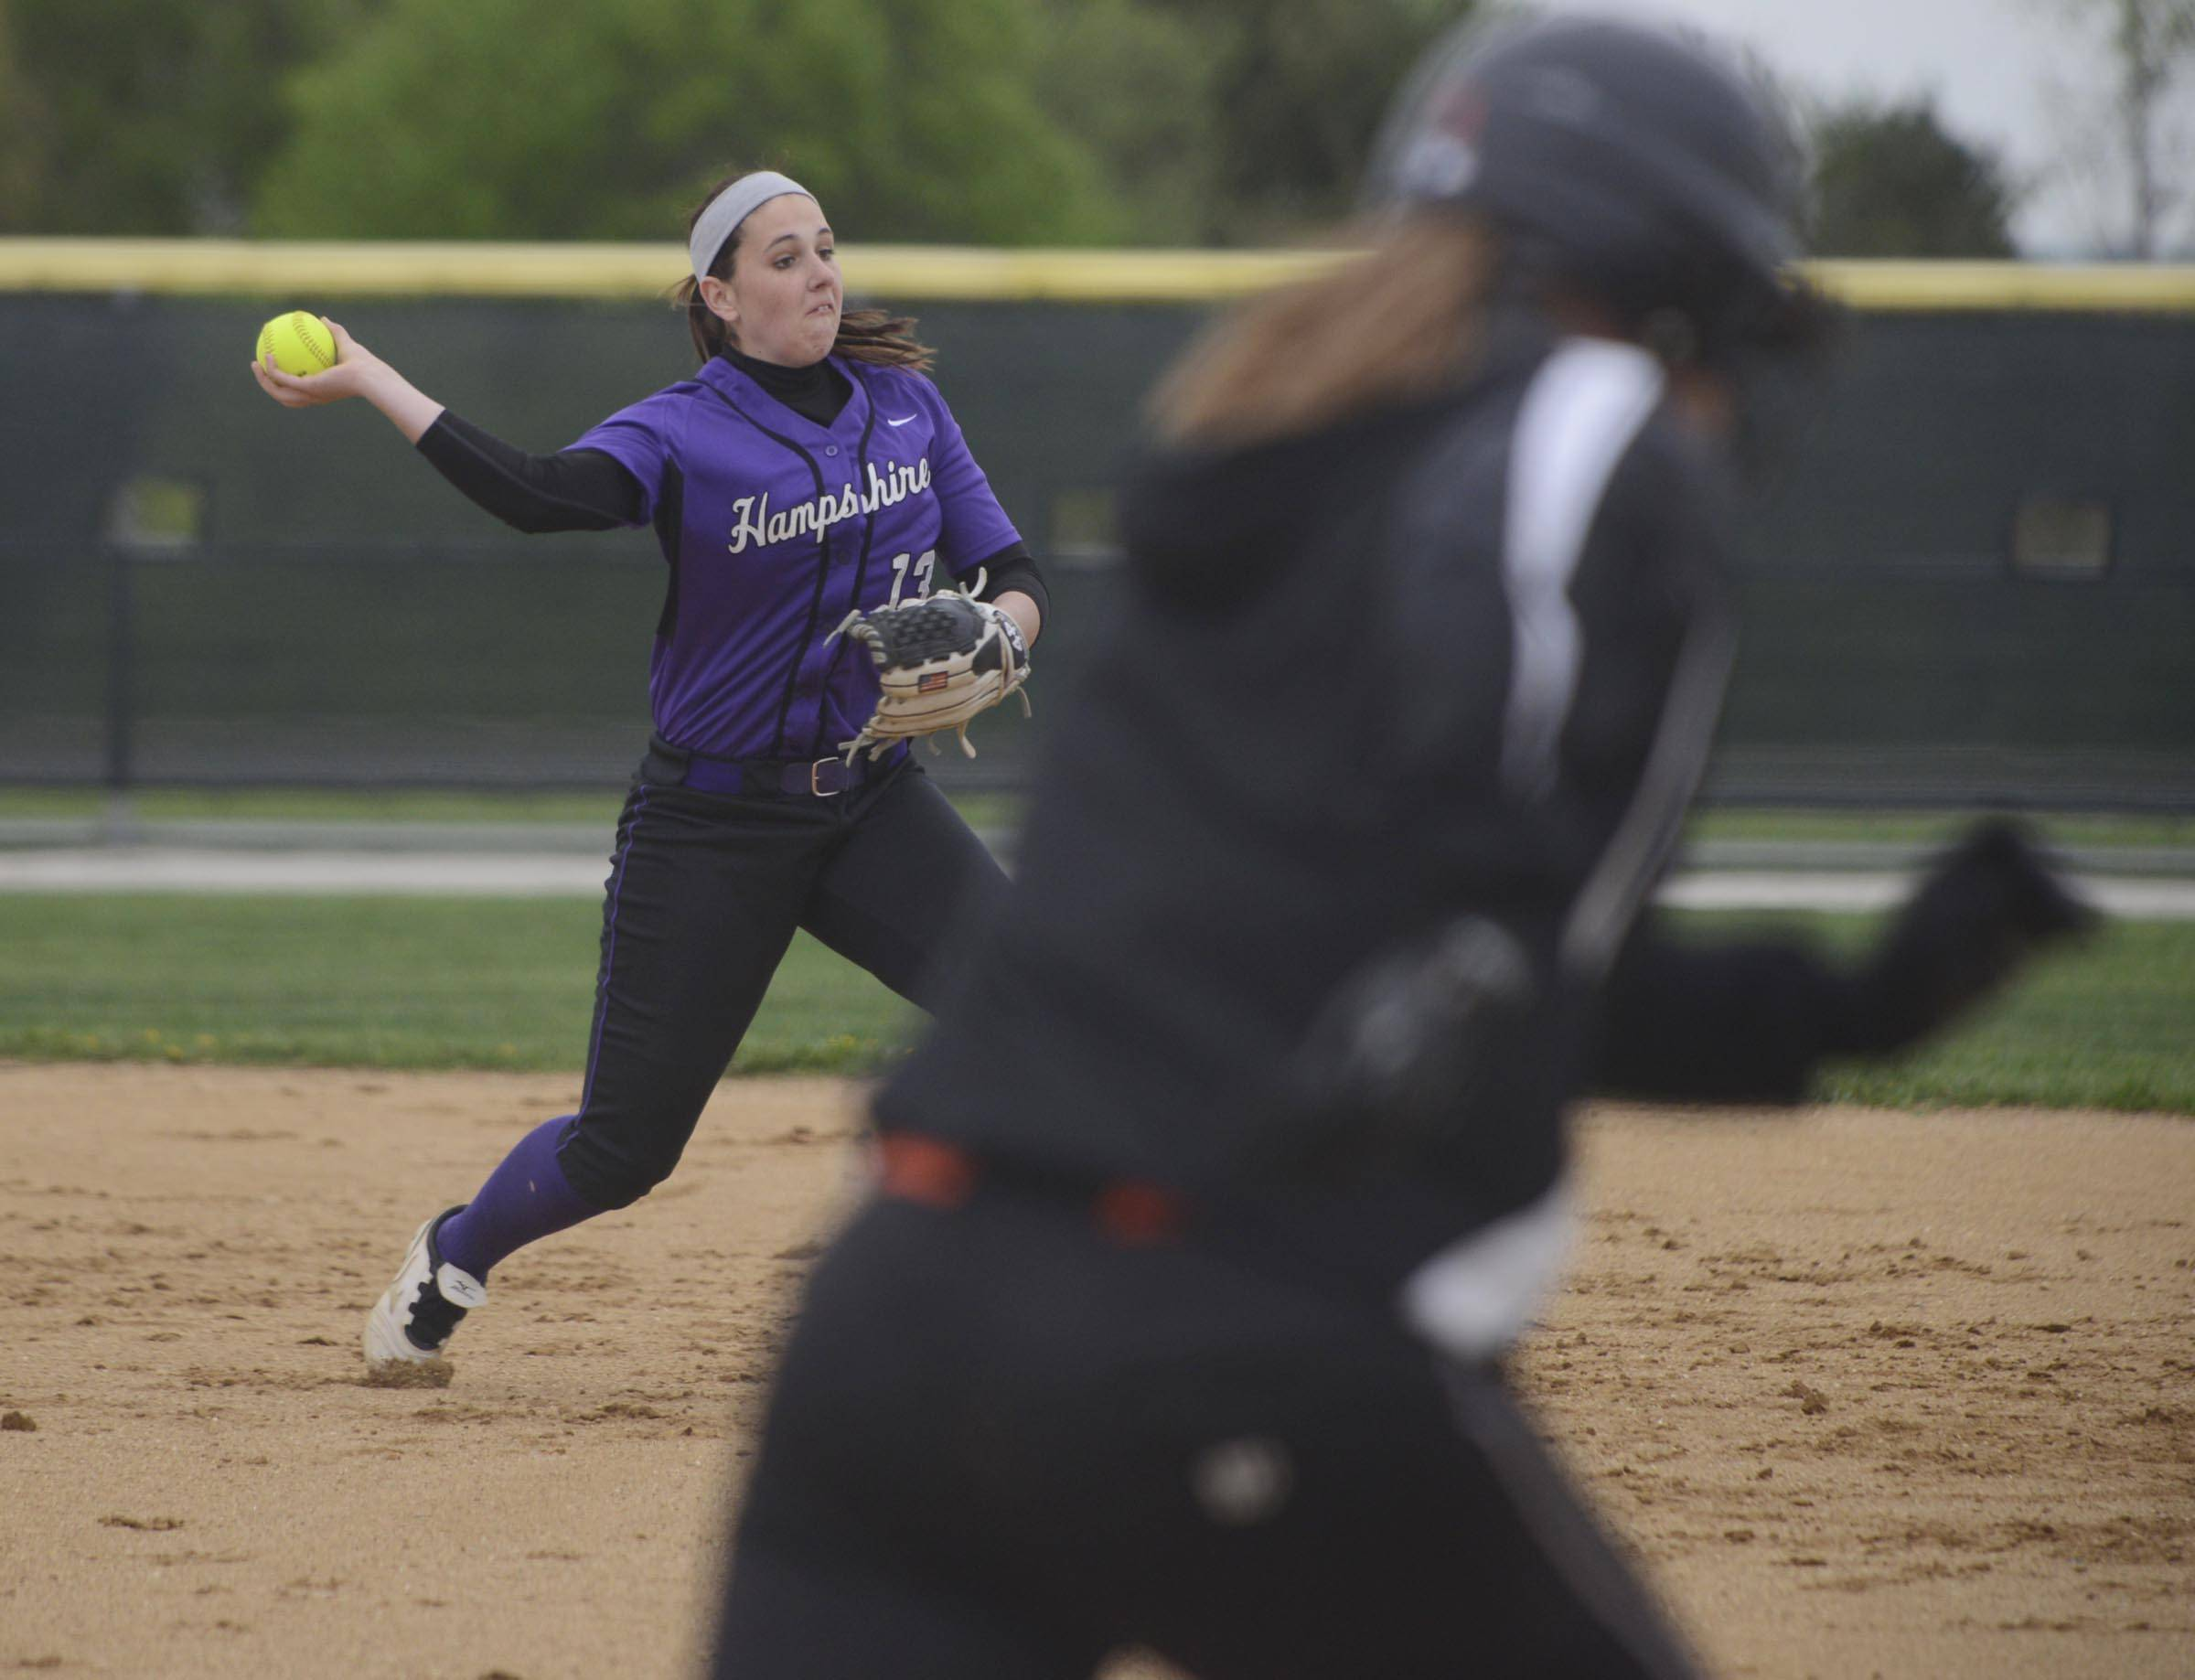 Hampshire's Peyton DeChant throws out a Crystal Lake Central runner in the first inning Wednesday in Hampshire.